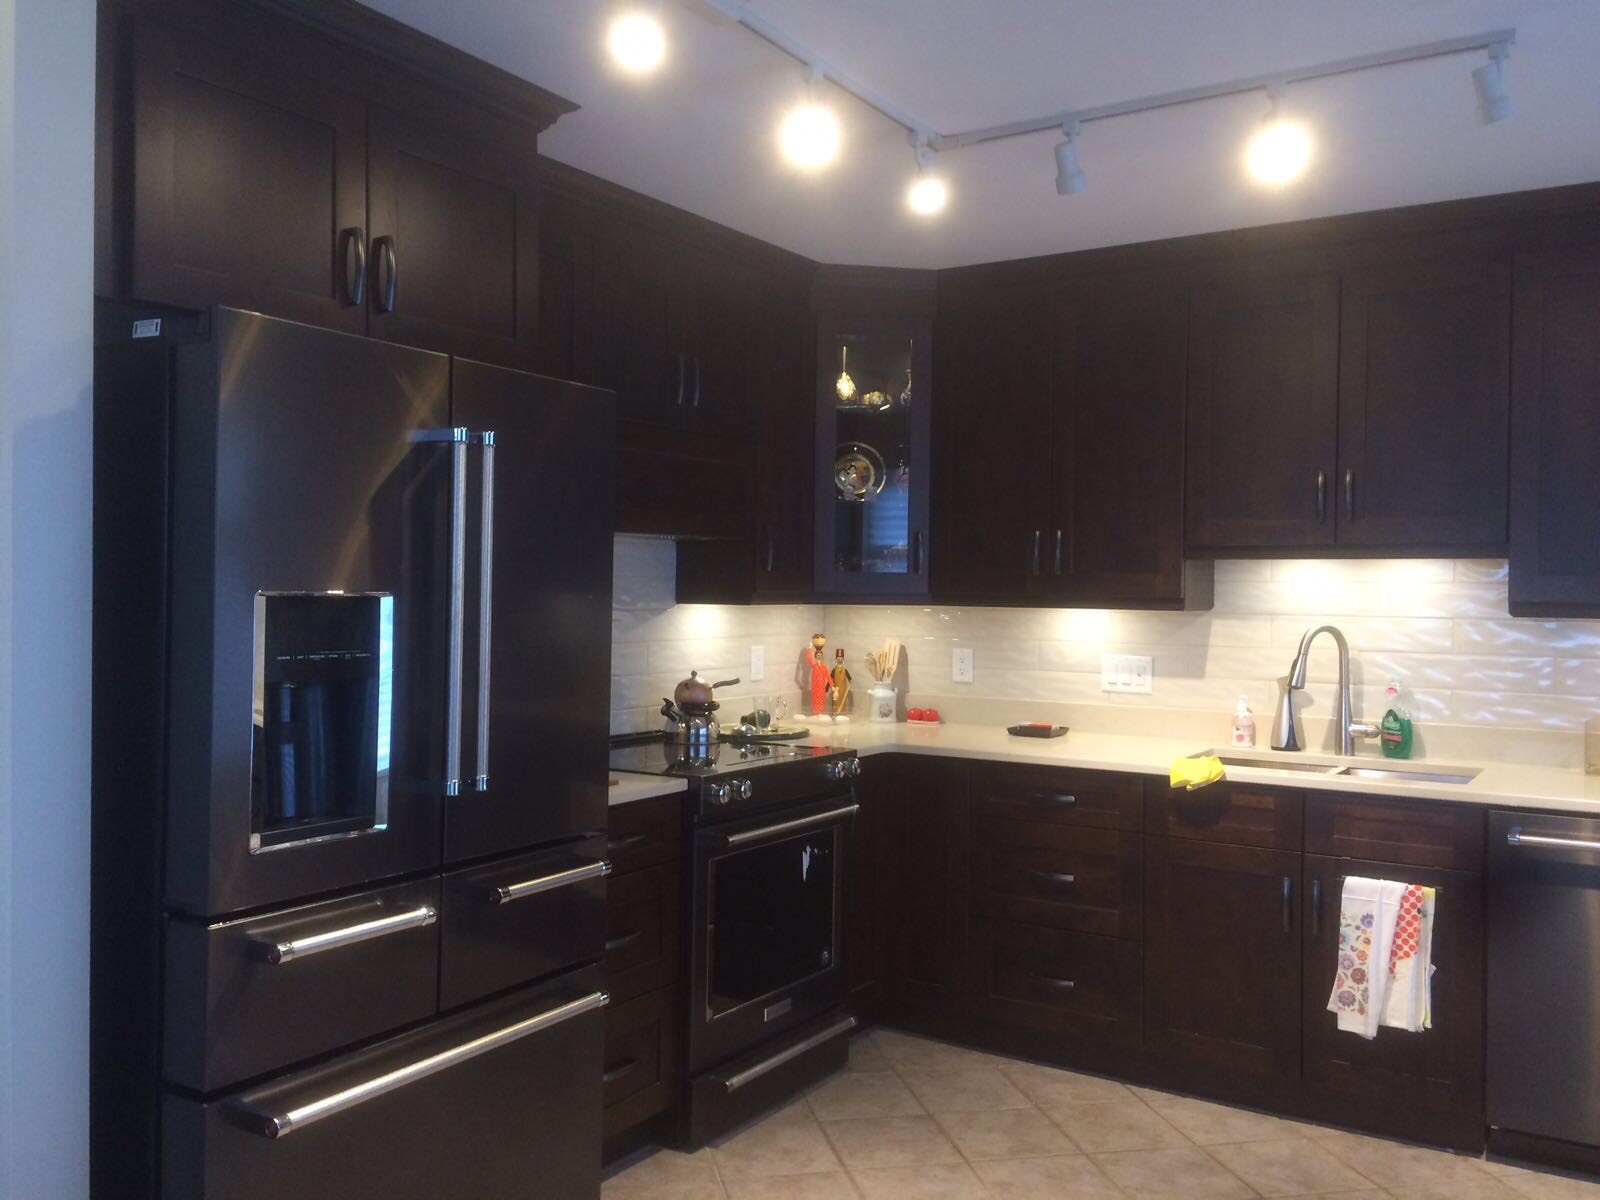 Interior Cabinets Are Us cabinets r us showroom burnaby design merit kitchens cabinet previousnext